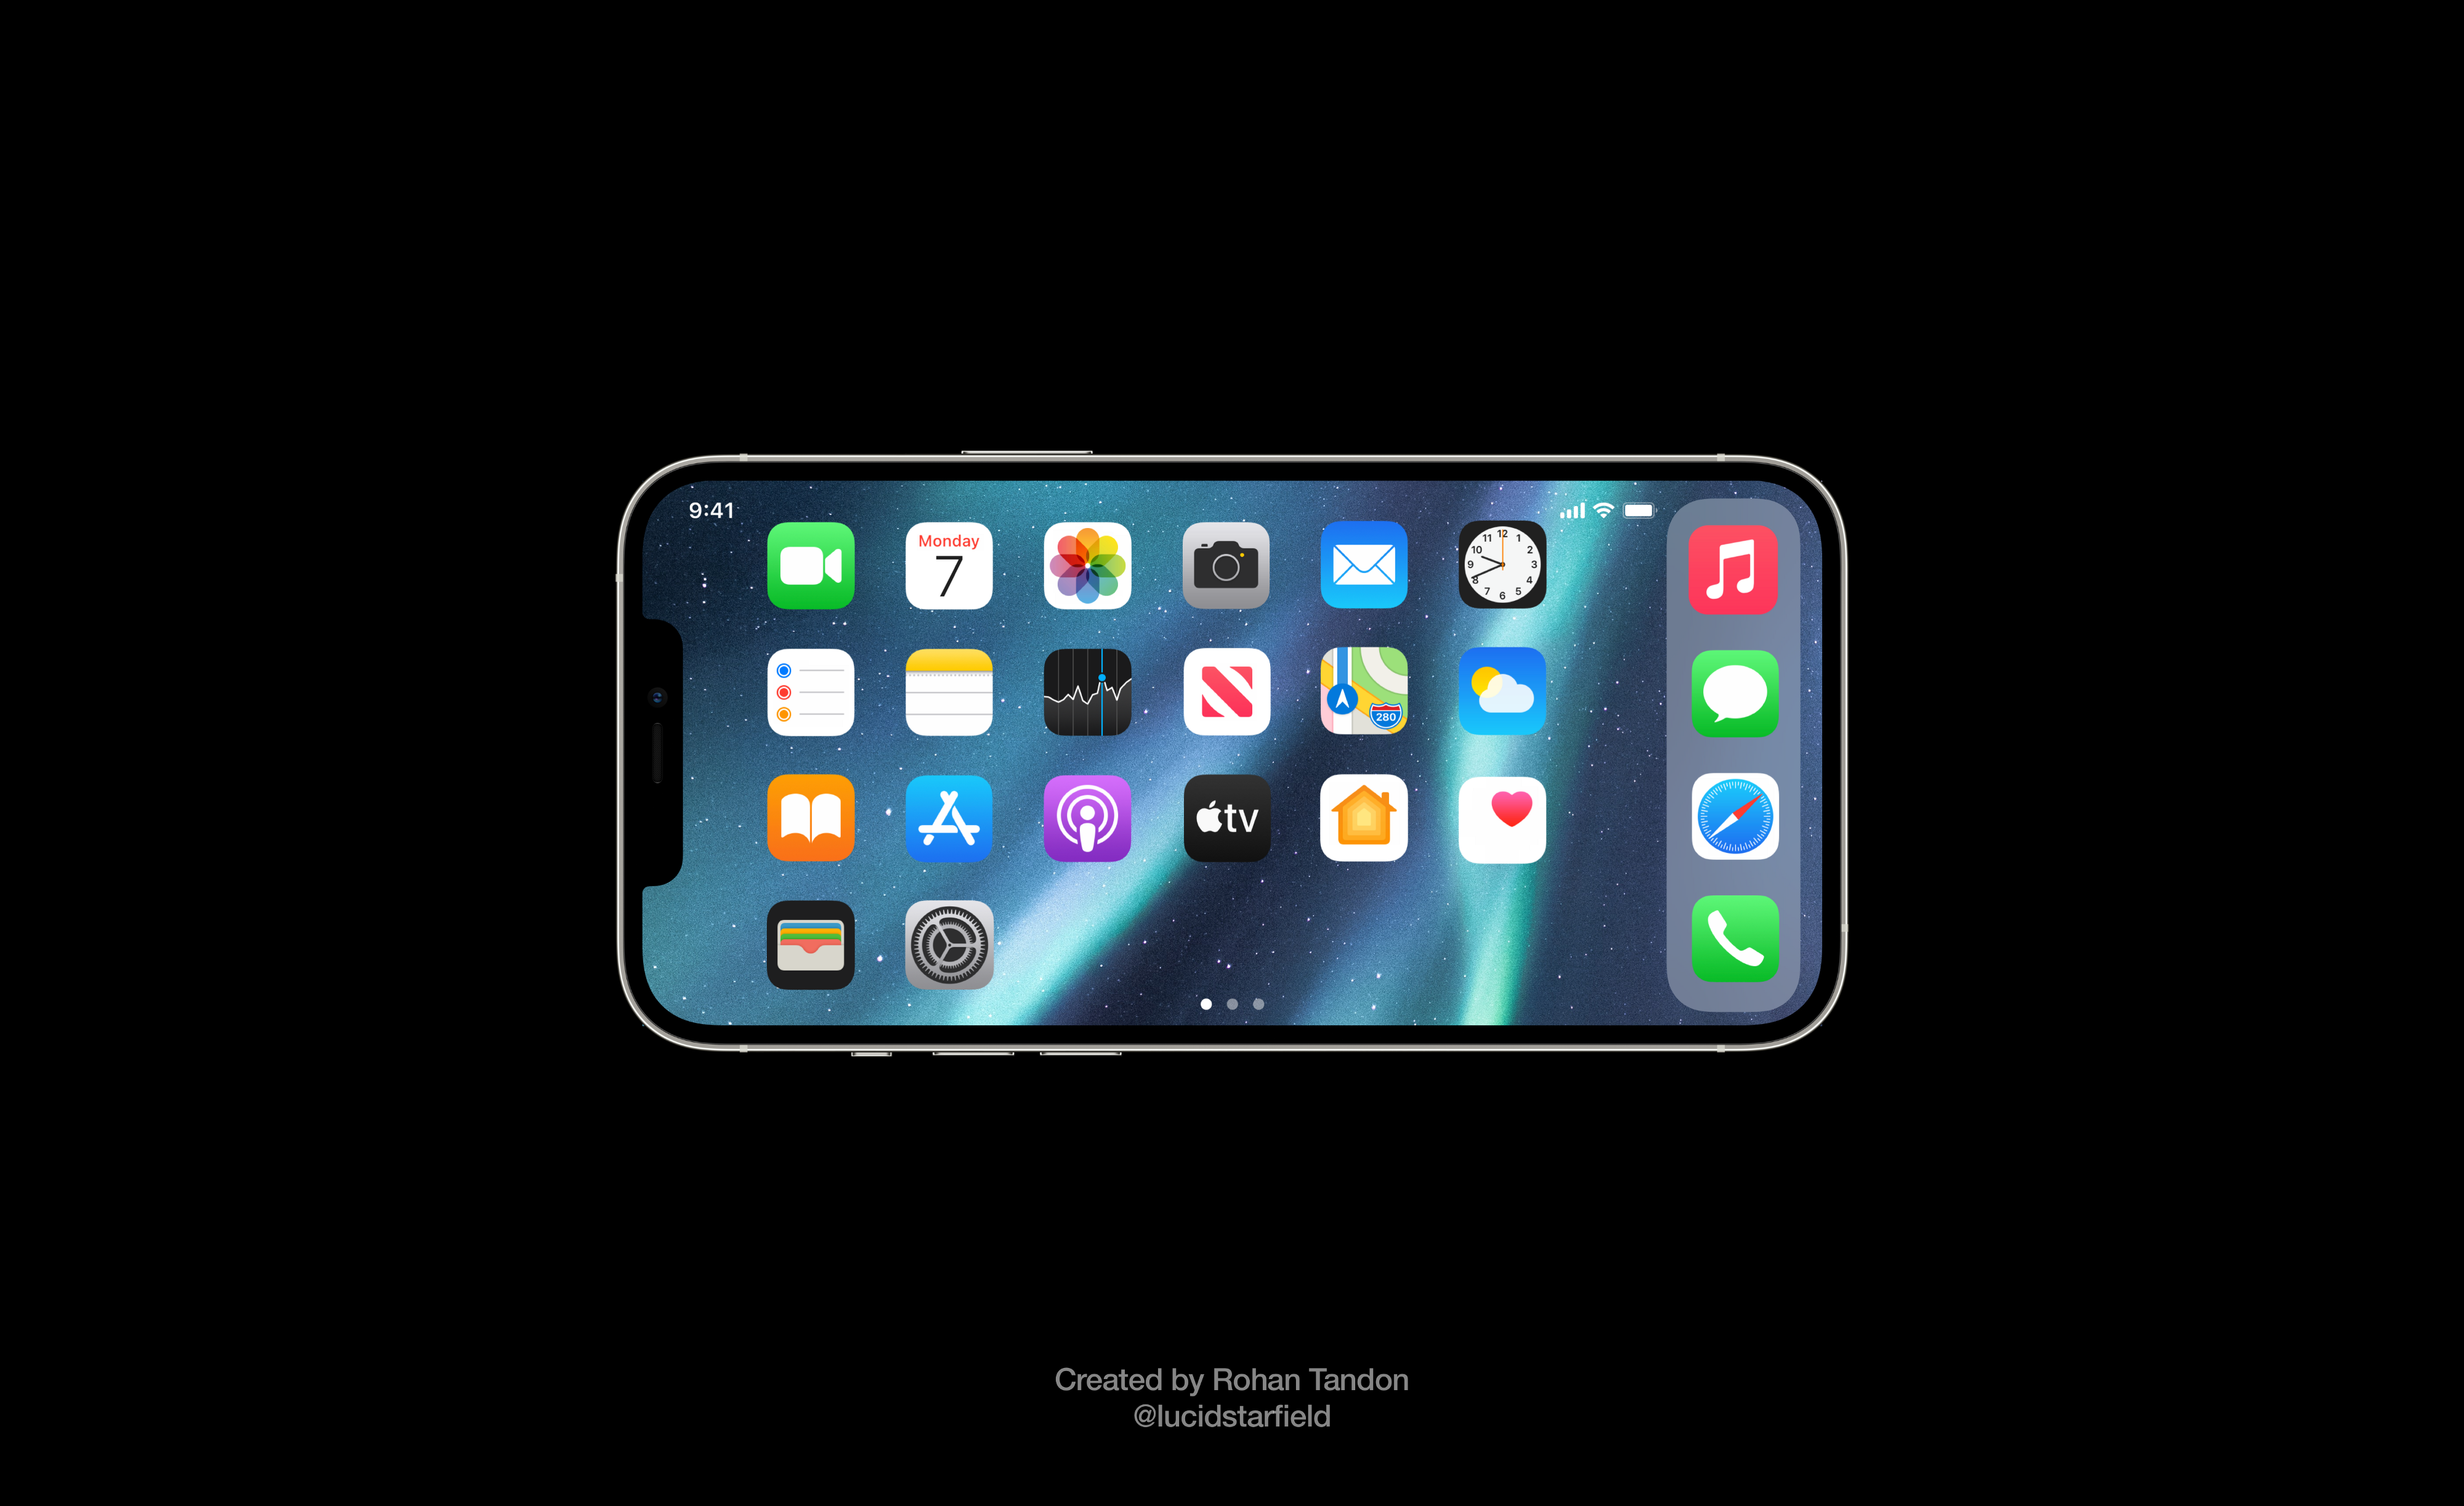 iOS 15 Aurora imagines a horizontal landscape Home Screen on the all-glass design.